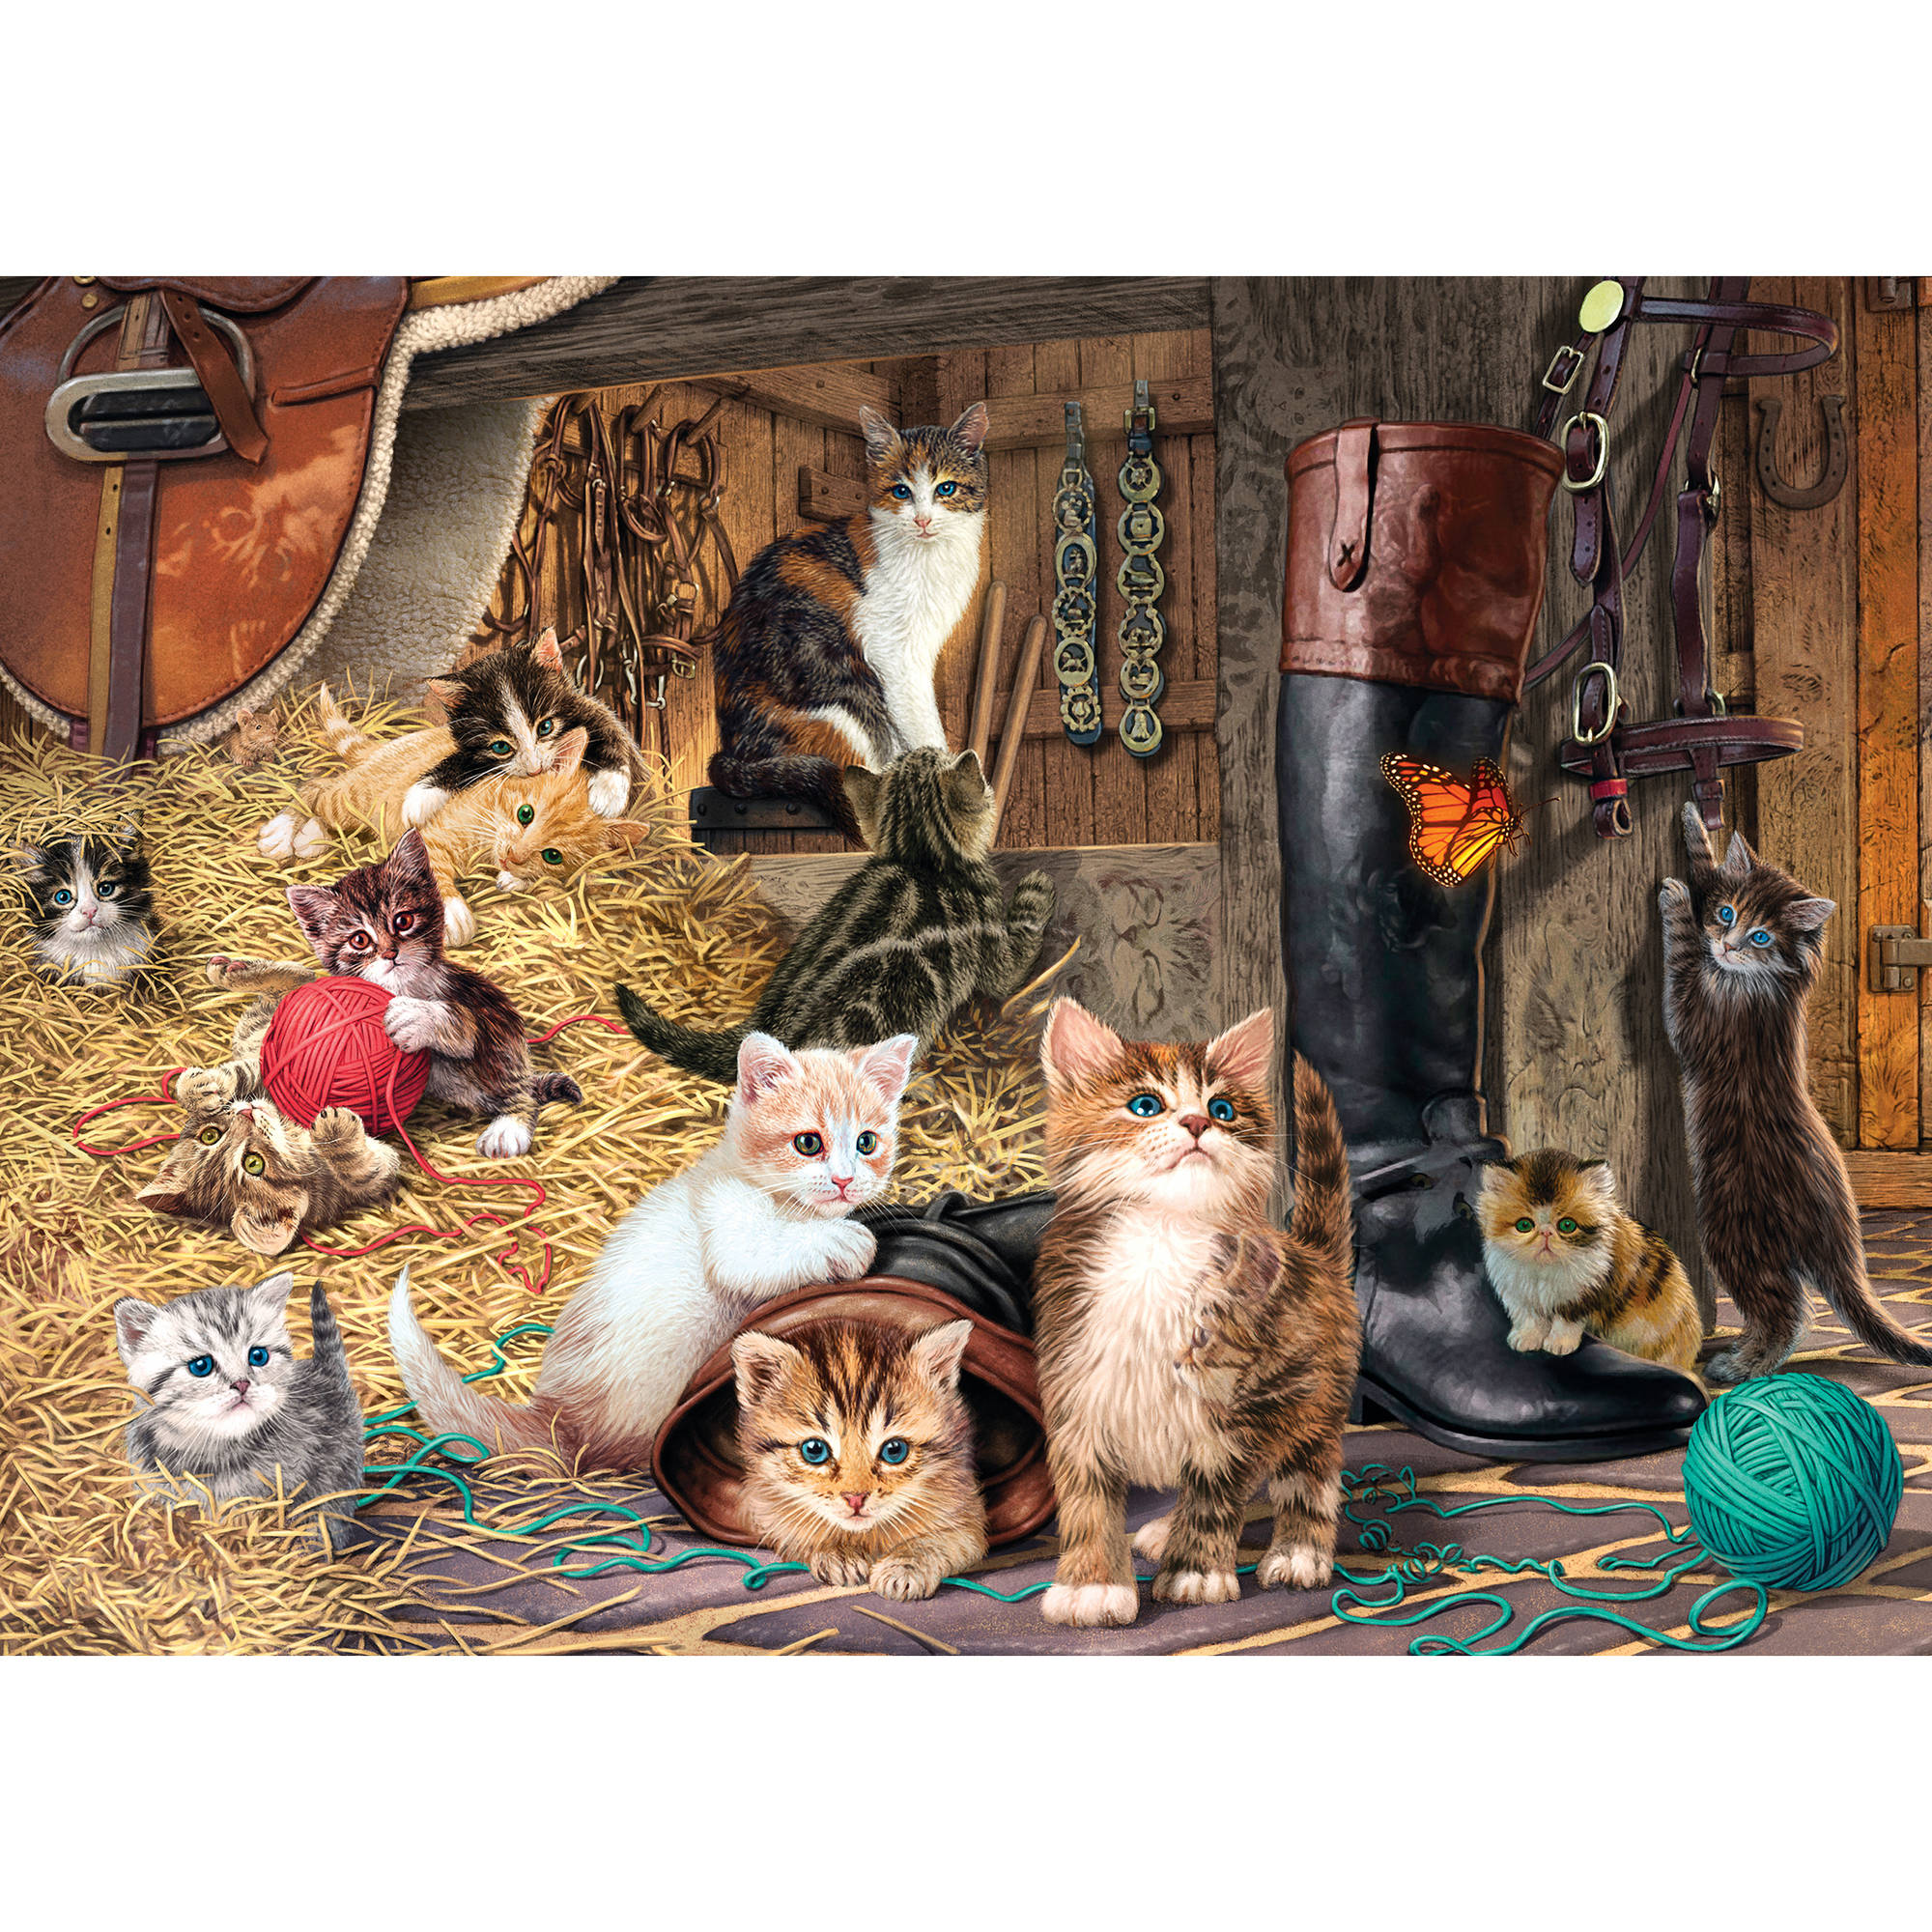 MasterPieces Watchful Eye Glow in the Dark Hidden Images 500-Piece Puzzle